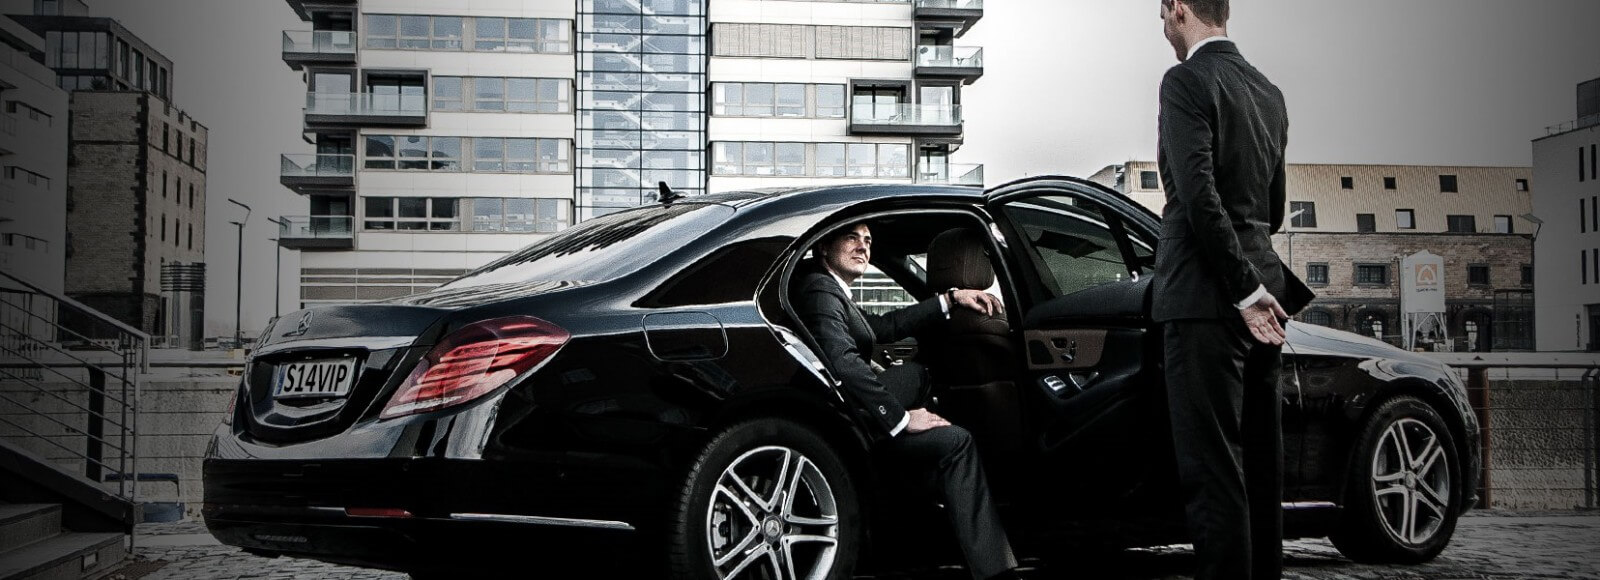 Car-Chauffeur -Hire-In-Dubai